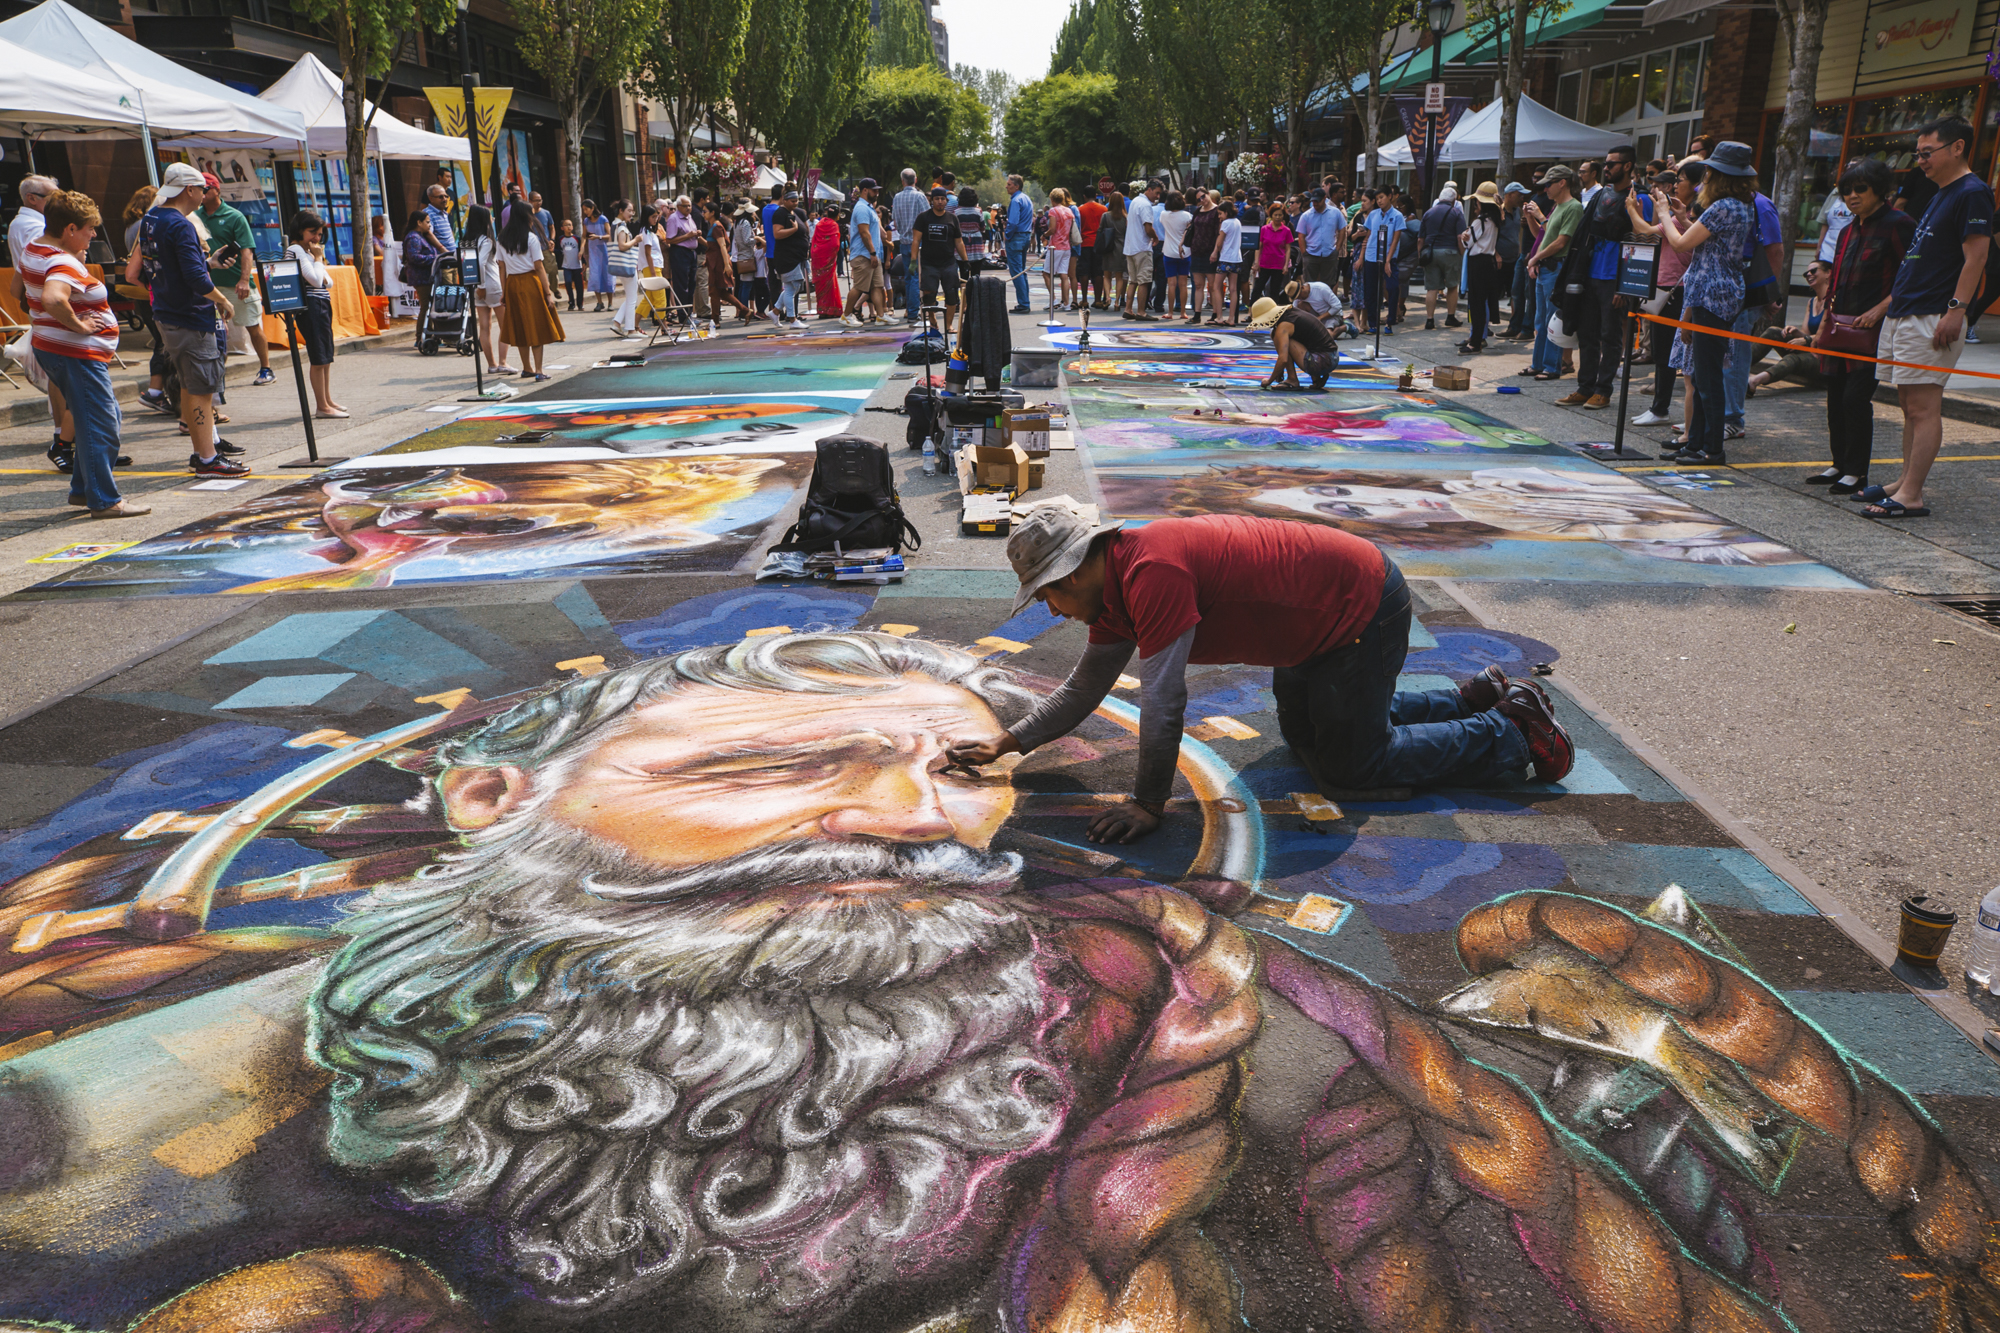 Over 50,000 people from all over the country came to Redmond, WA this past weekend to see chalk artists create stunning murals on the streets. Artists were given free reign to create whatever they wished, which resulted in a amazing variety of works that will last until the next rain! (Image: Sunita Martini / Seattle Refined)